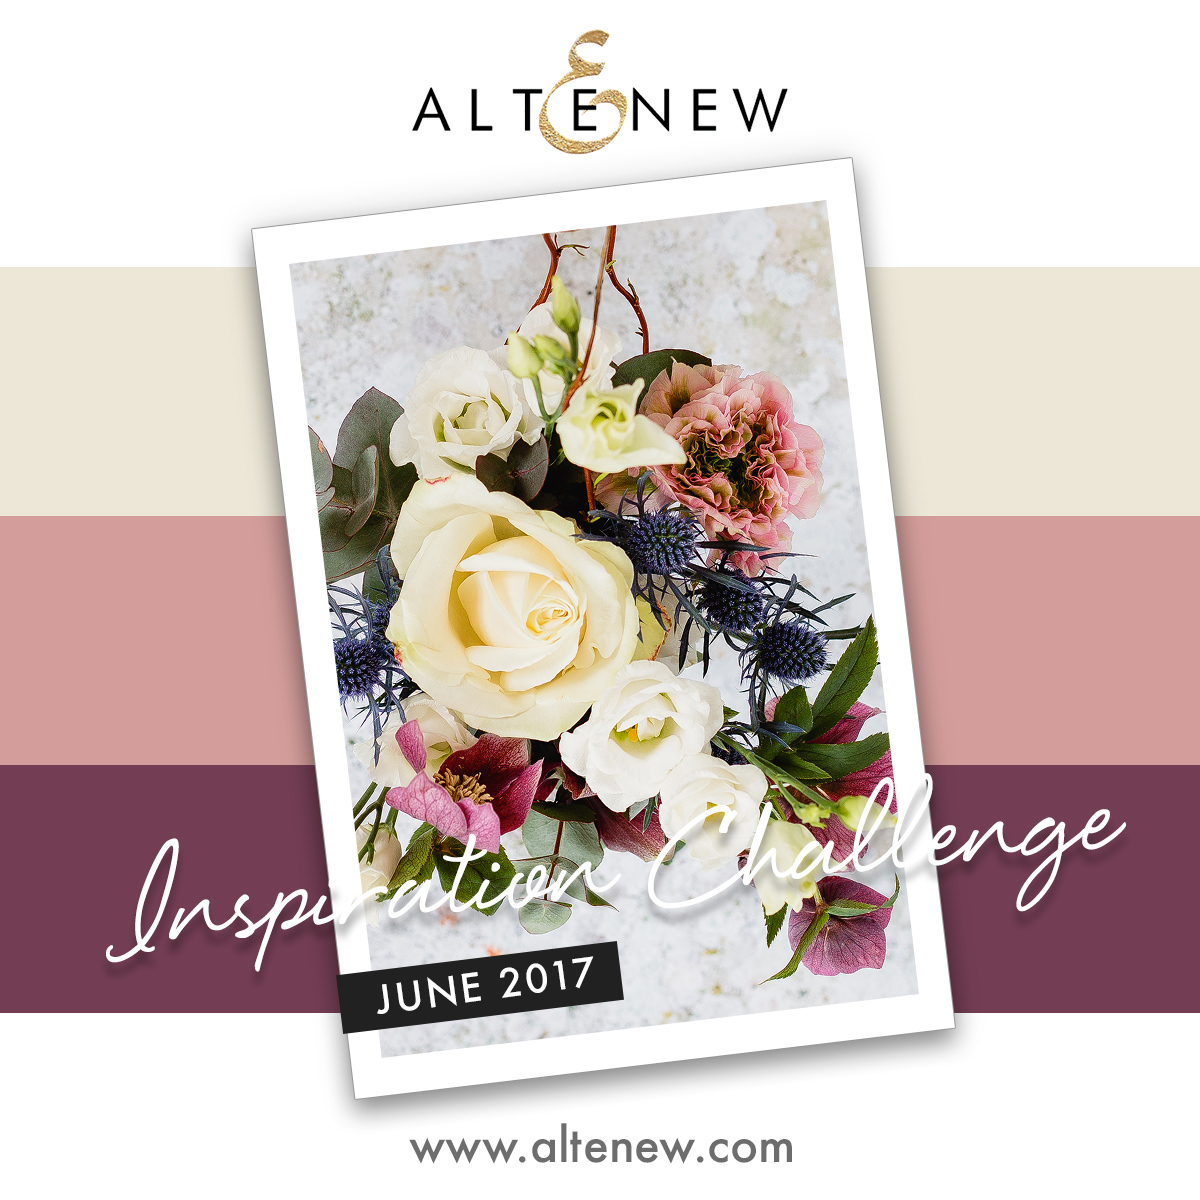 June 2017 Altenew Inspiration Challenge. Find out more by clicking the following link: http://altenewblog.com/2017/05/28/june-2017-inspiration-challenge-white-on-white-focal-point/